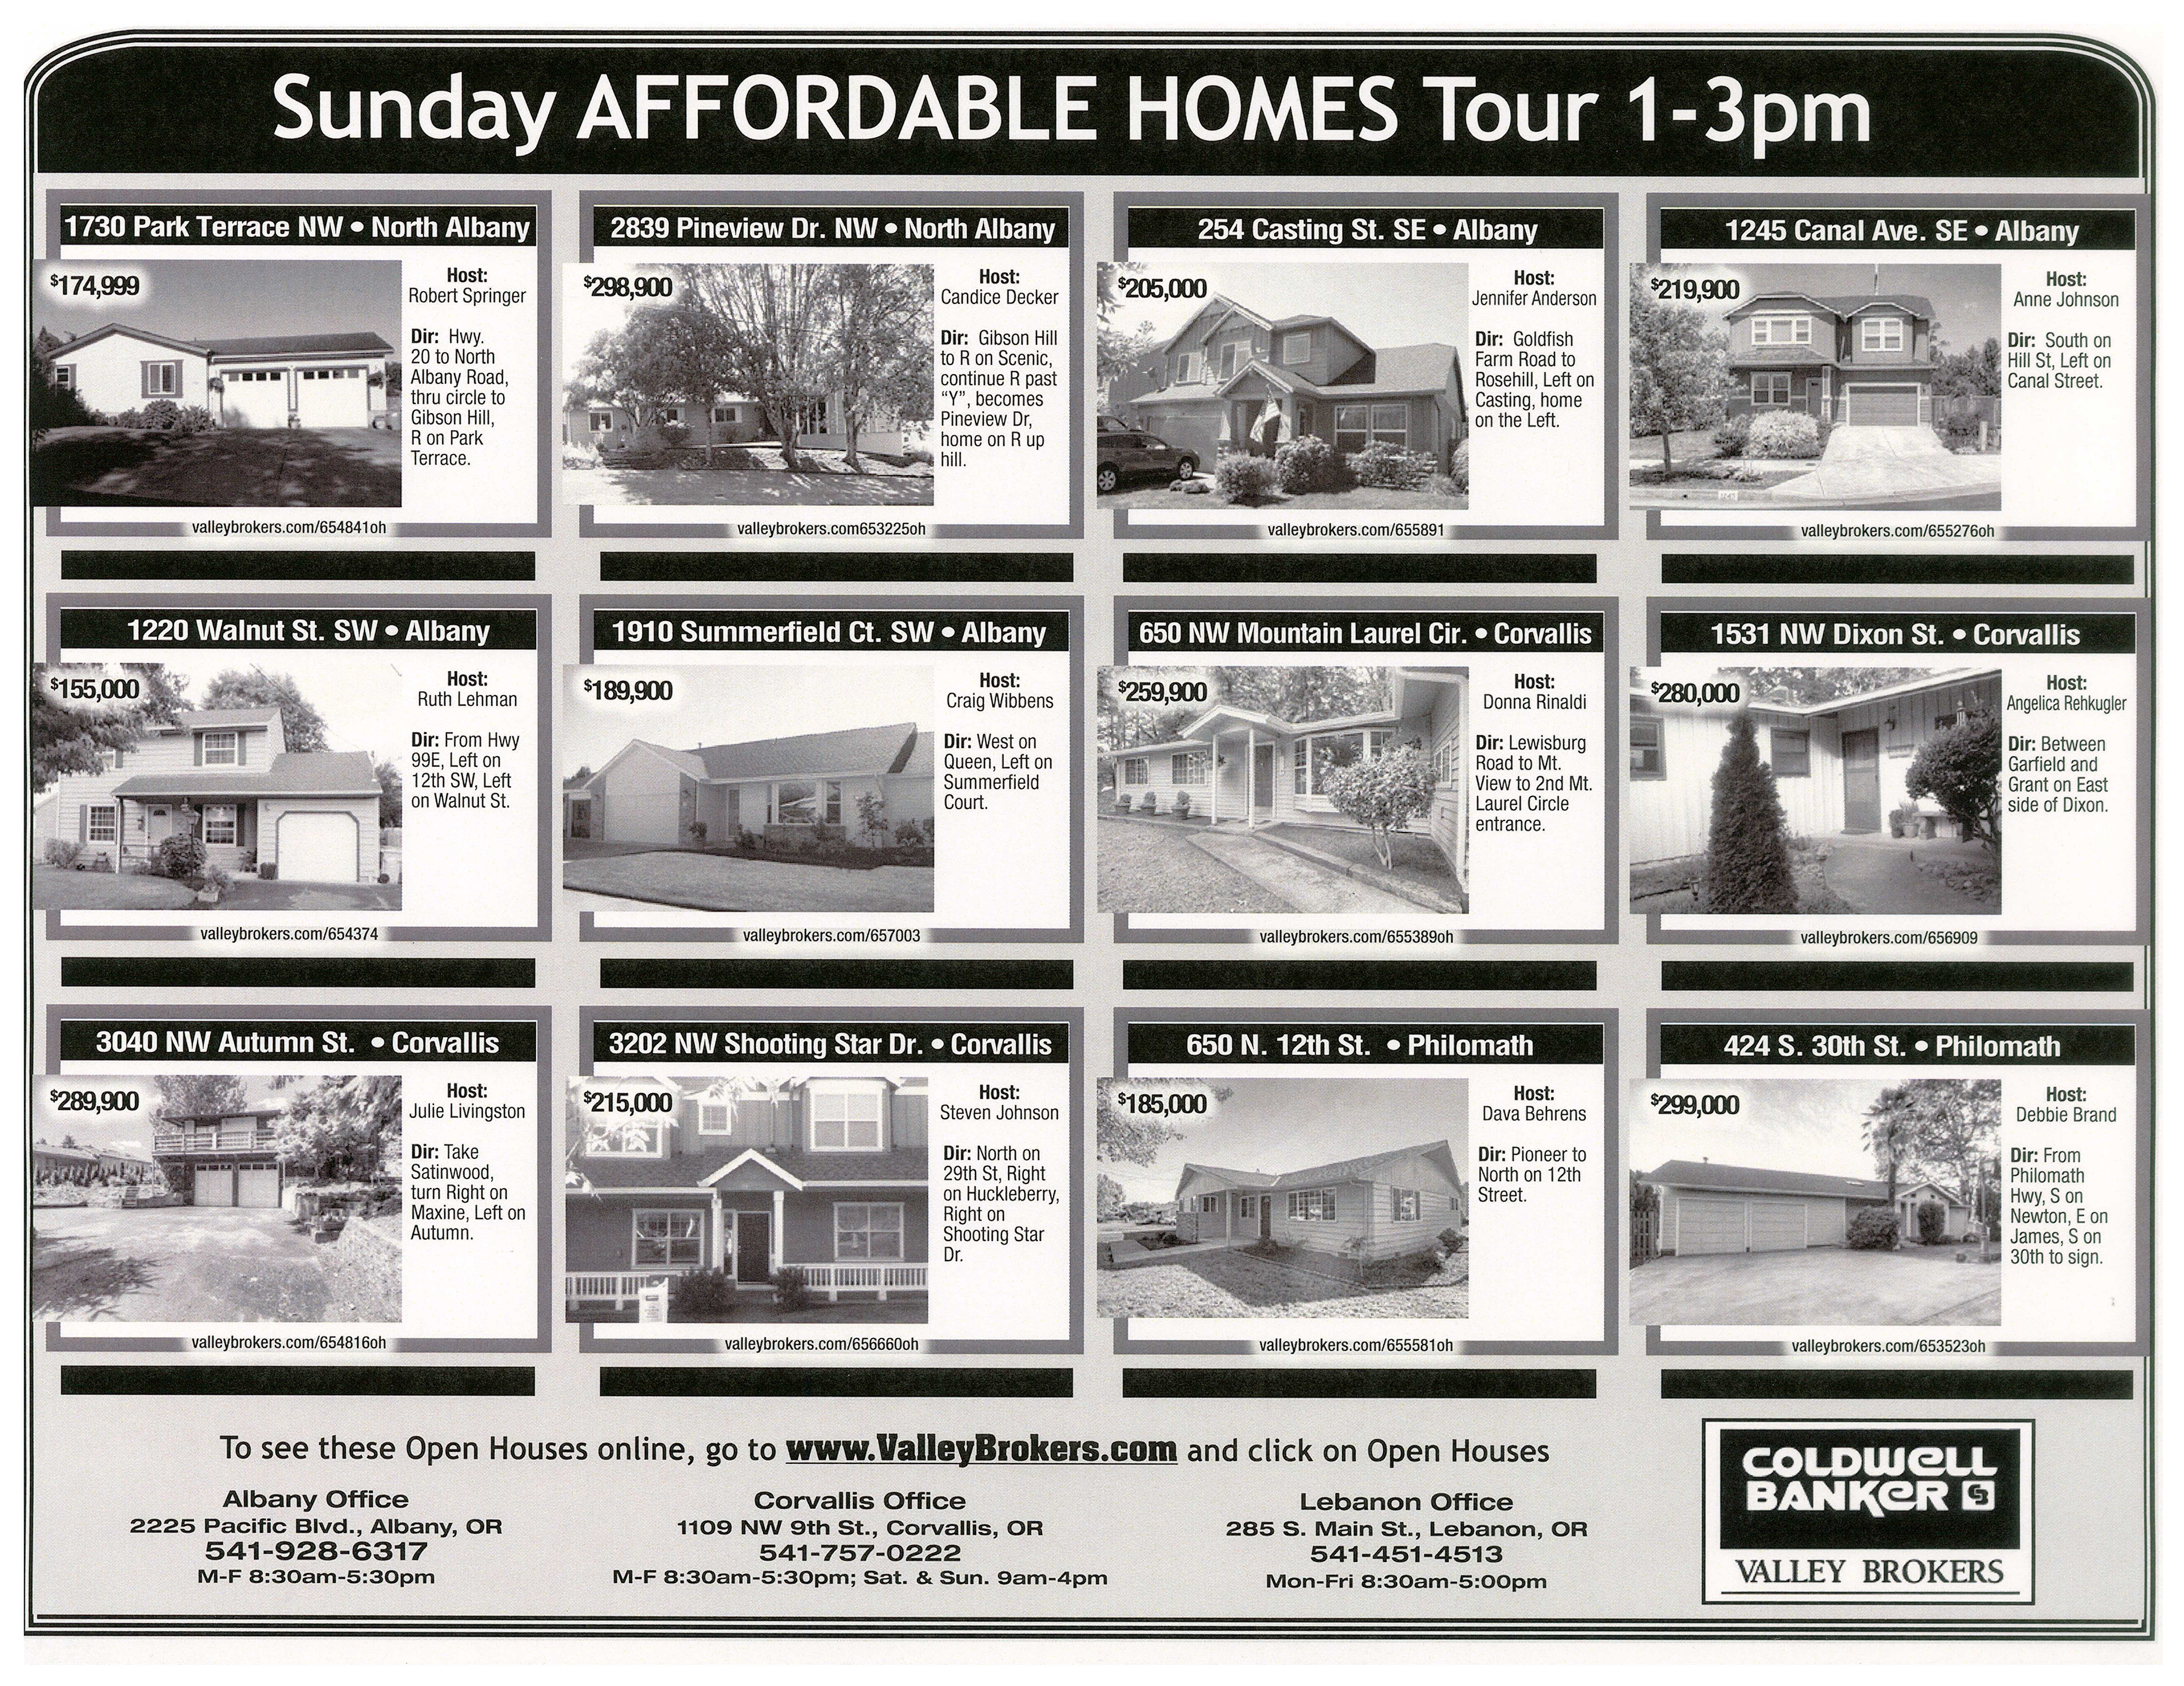 Coldwell Banker Affordable Homes Tour Open House September 23, 2012